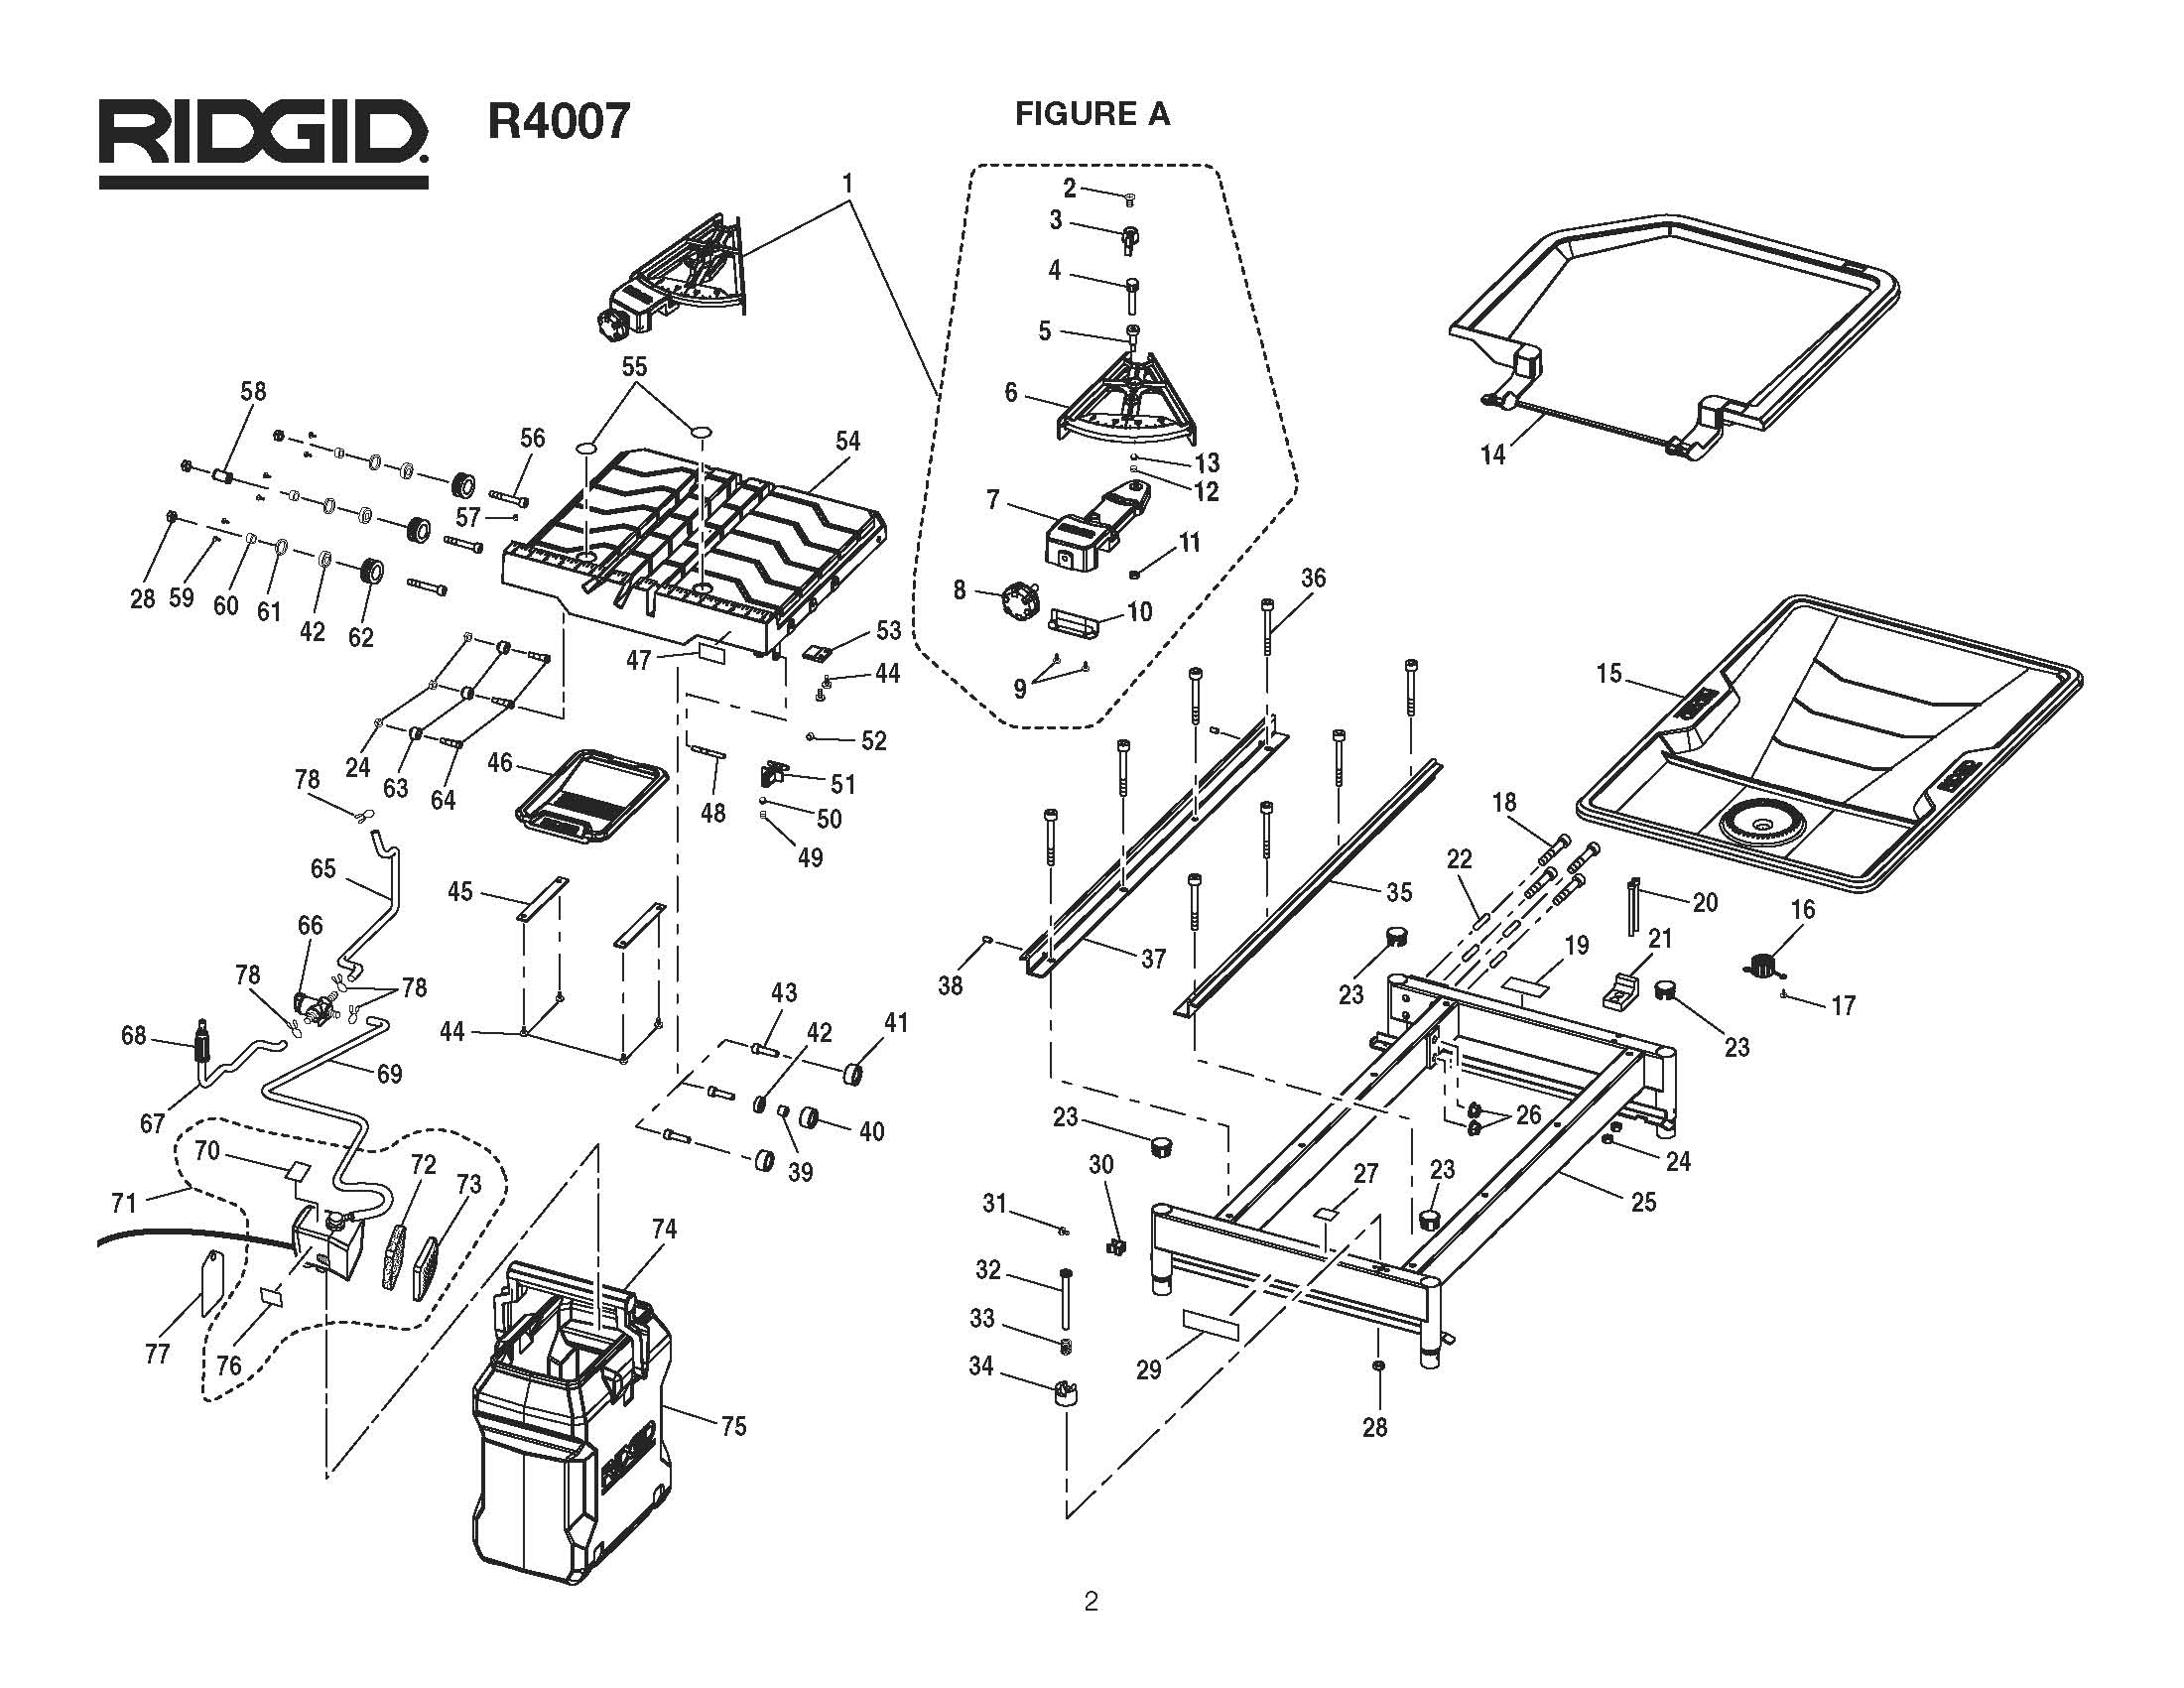 Ryobi Expand It Parts Diagram Wiring Source Ss30 List And Ry30040 Ereplacementpartscom 202524827 As Well Ts251u Miter Saw C 7931 8004 31738 In Addition